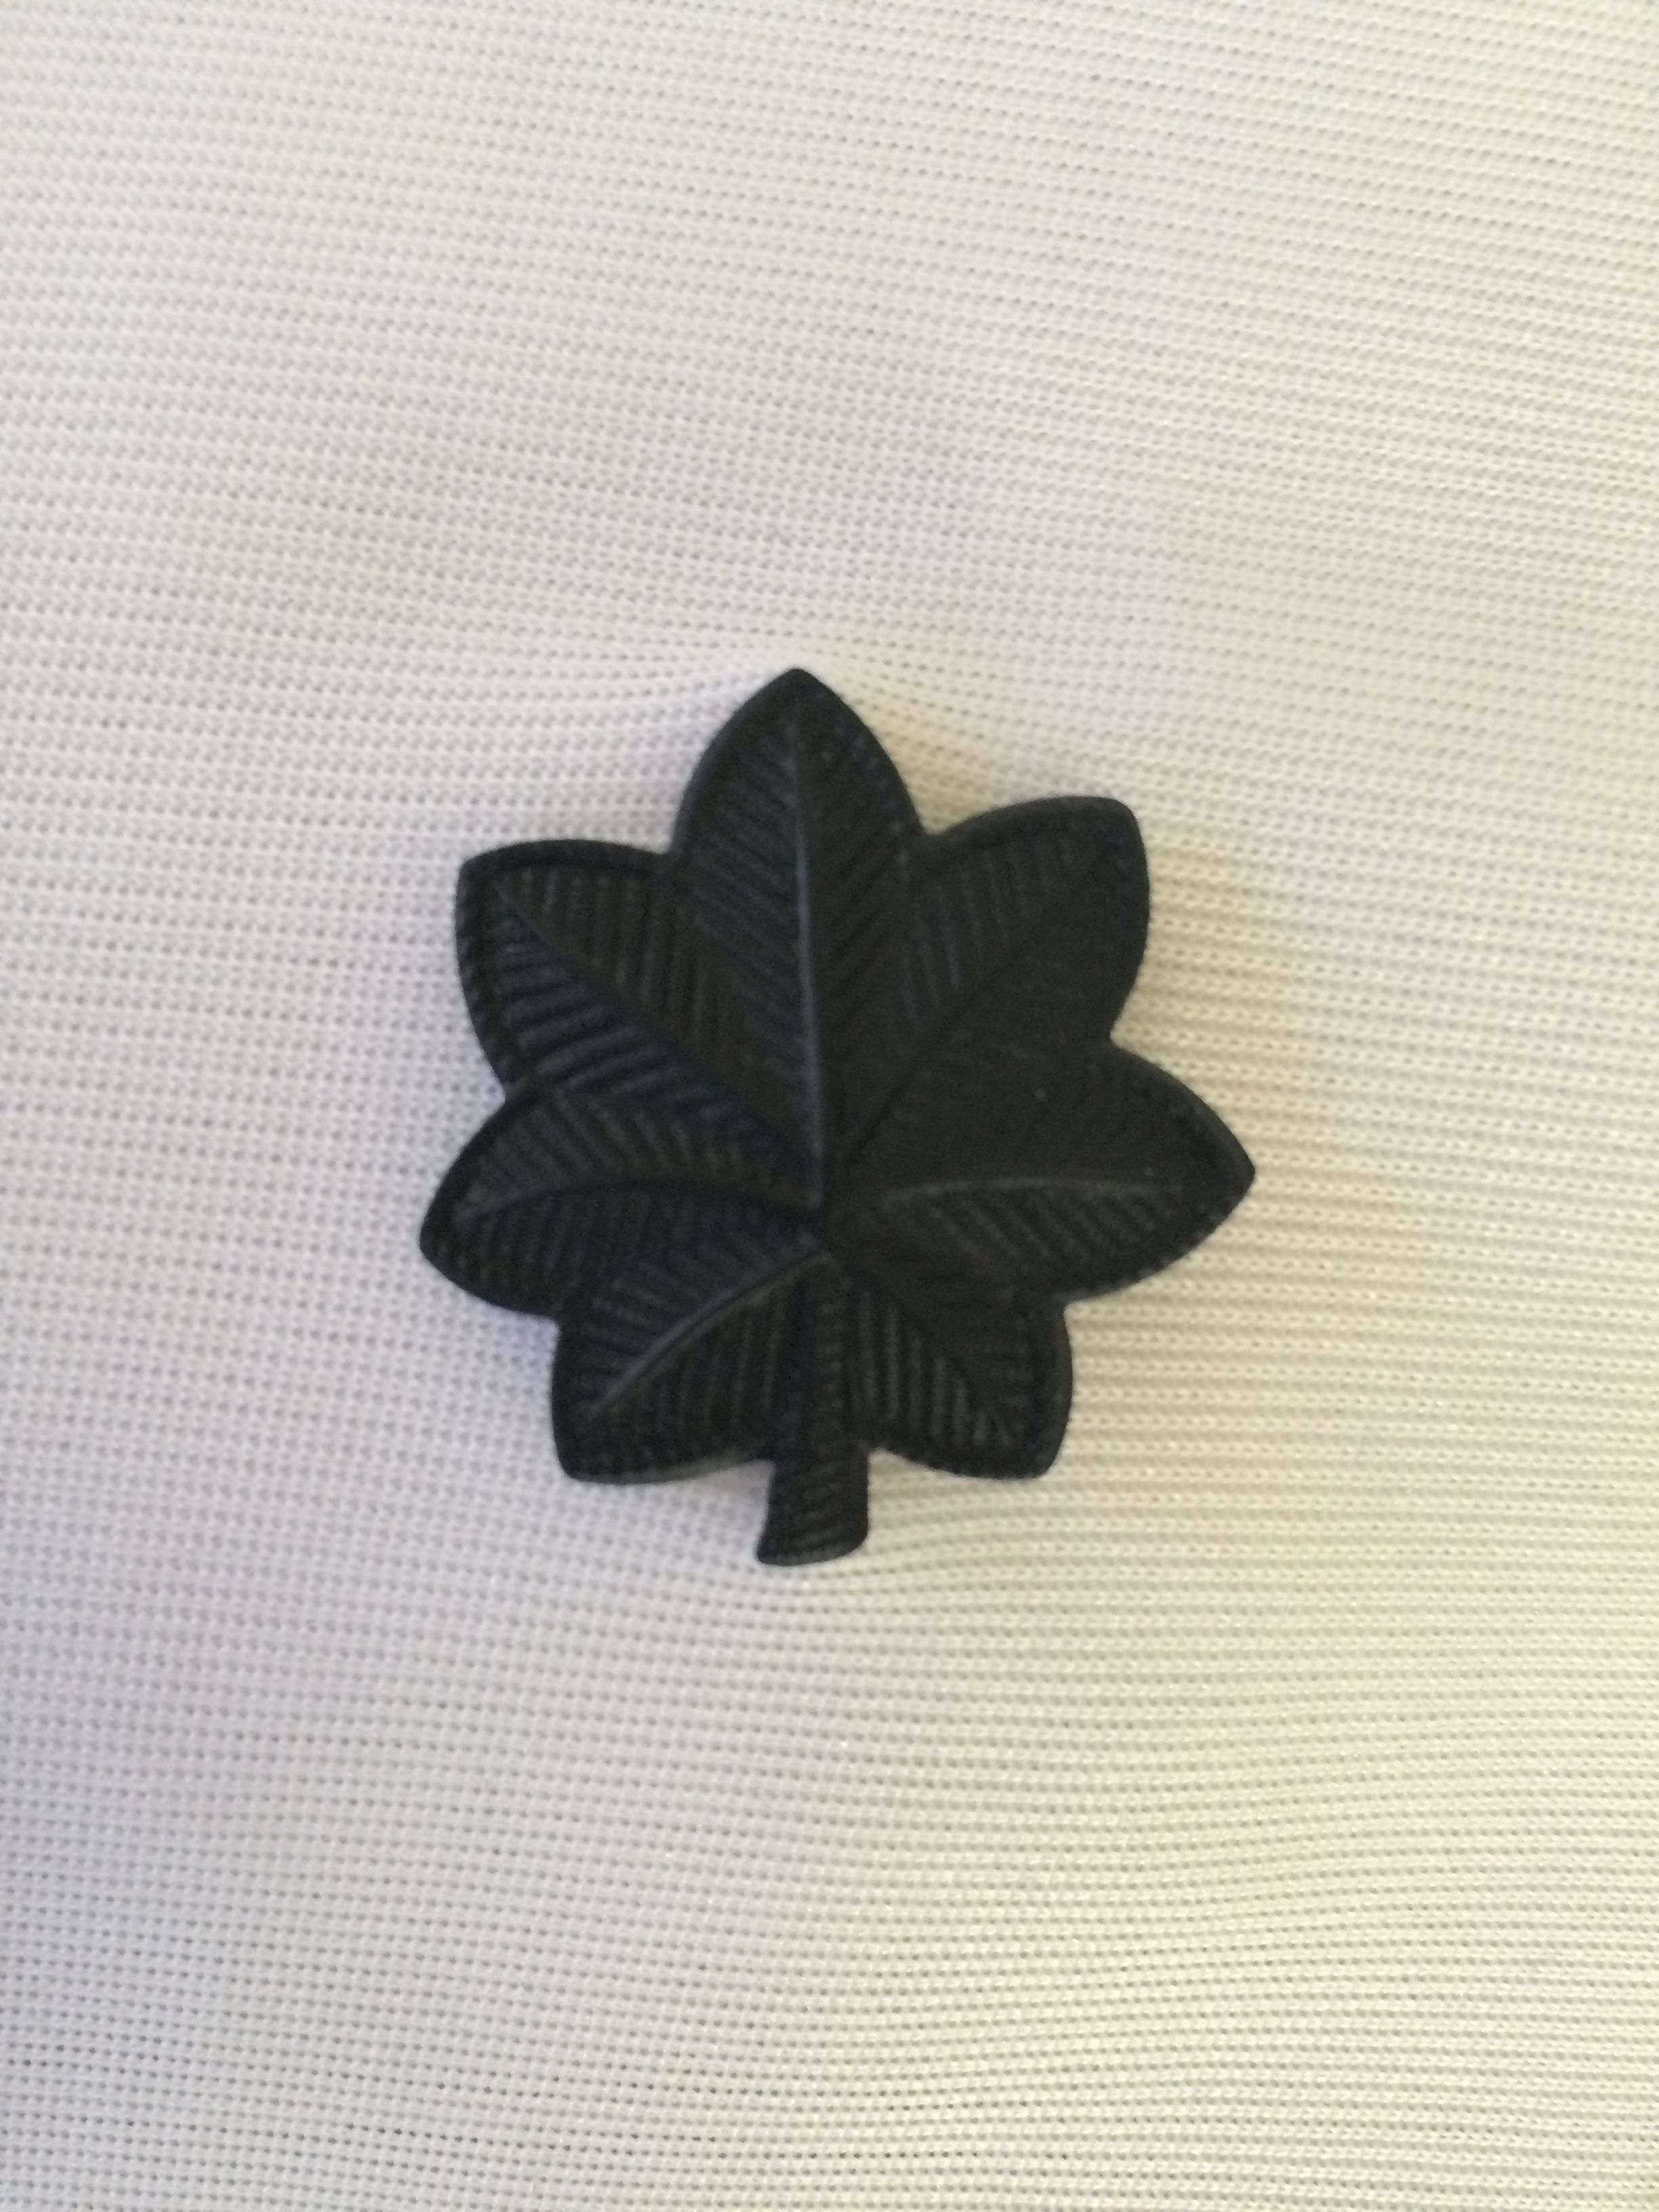 Us Army Subdued Rank Insignia Lieutenant Colonel O 5 Us